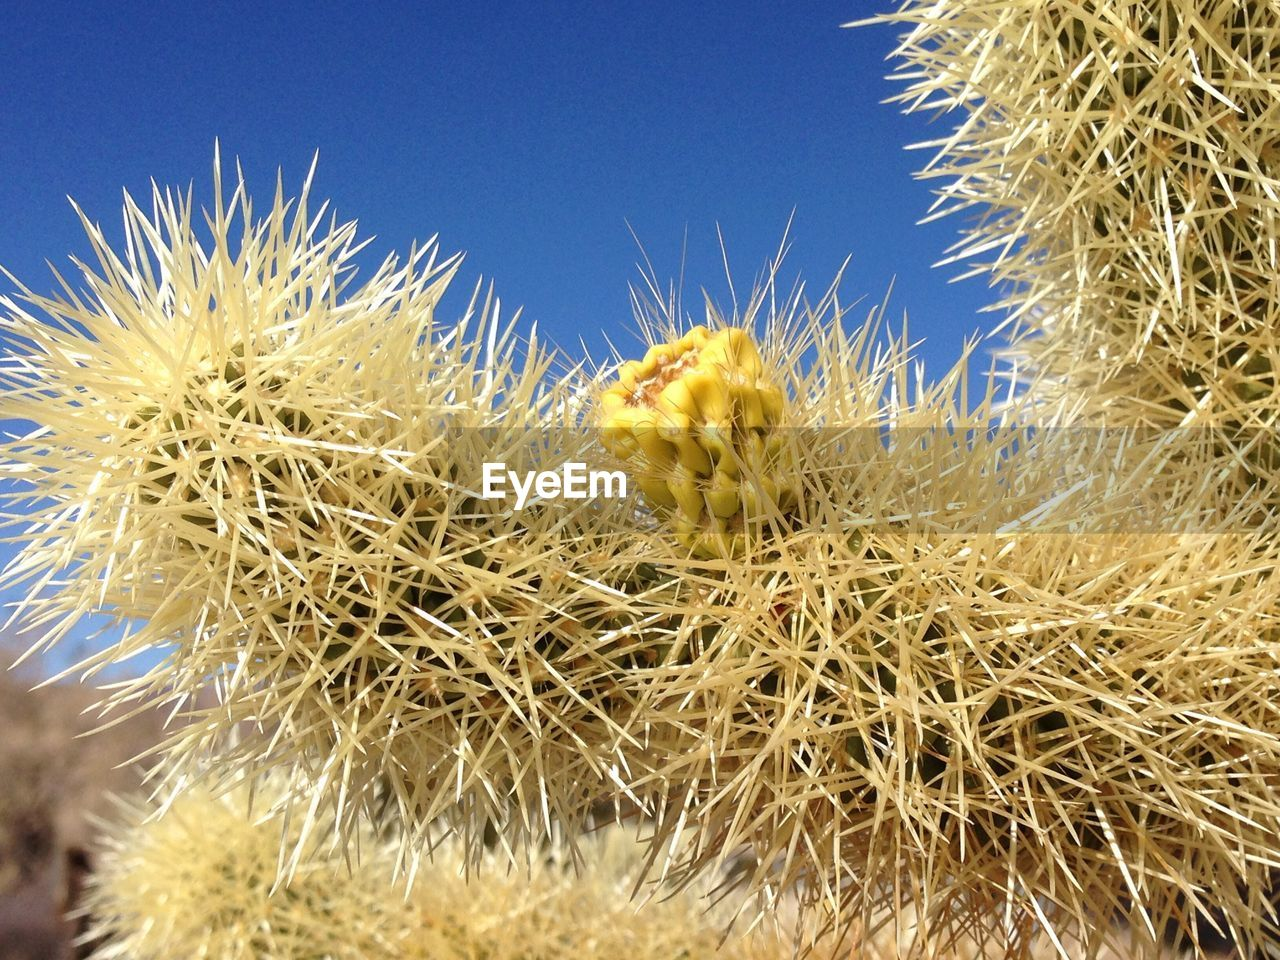 thorn, cactus, nature, growth, spiked, plant, beauty in nature, close-up, day, no people, flower, outdoors, clear sky, freshness, flower head, thistle